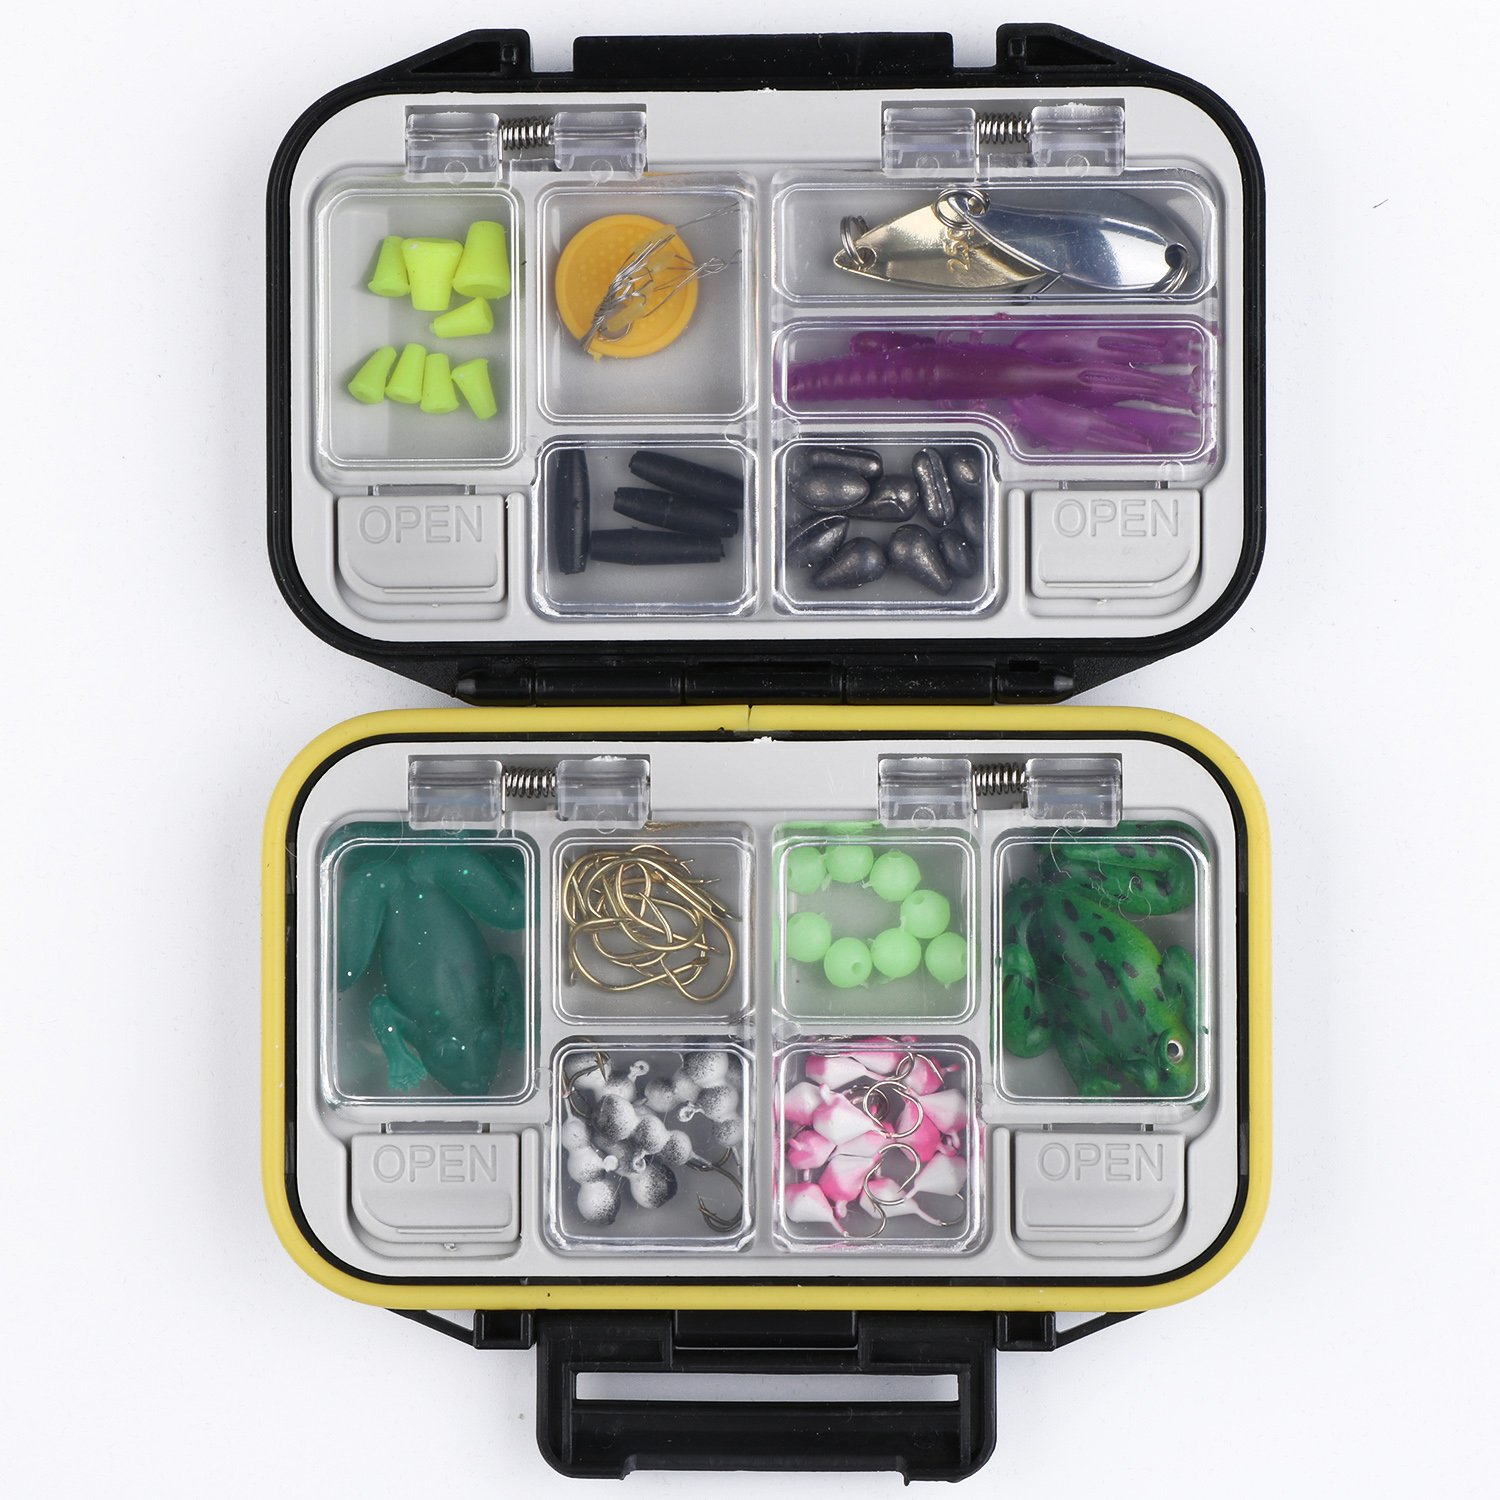 Goture Fishing-Lure-Boxes-Bait Tackle-Plastic-Storage, Small-Lure-Case, Mini-Lure-Box for Vest, Fishing-Accessories Large Boxes Storage Containers (Small/Black)